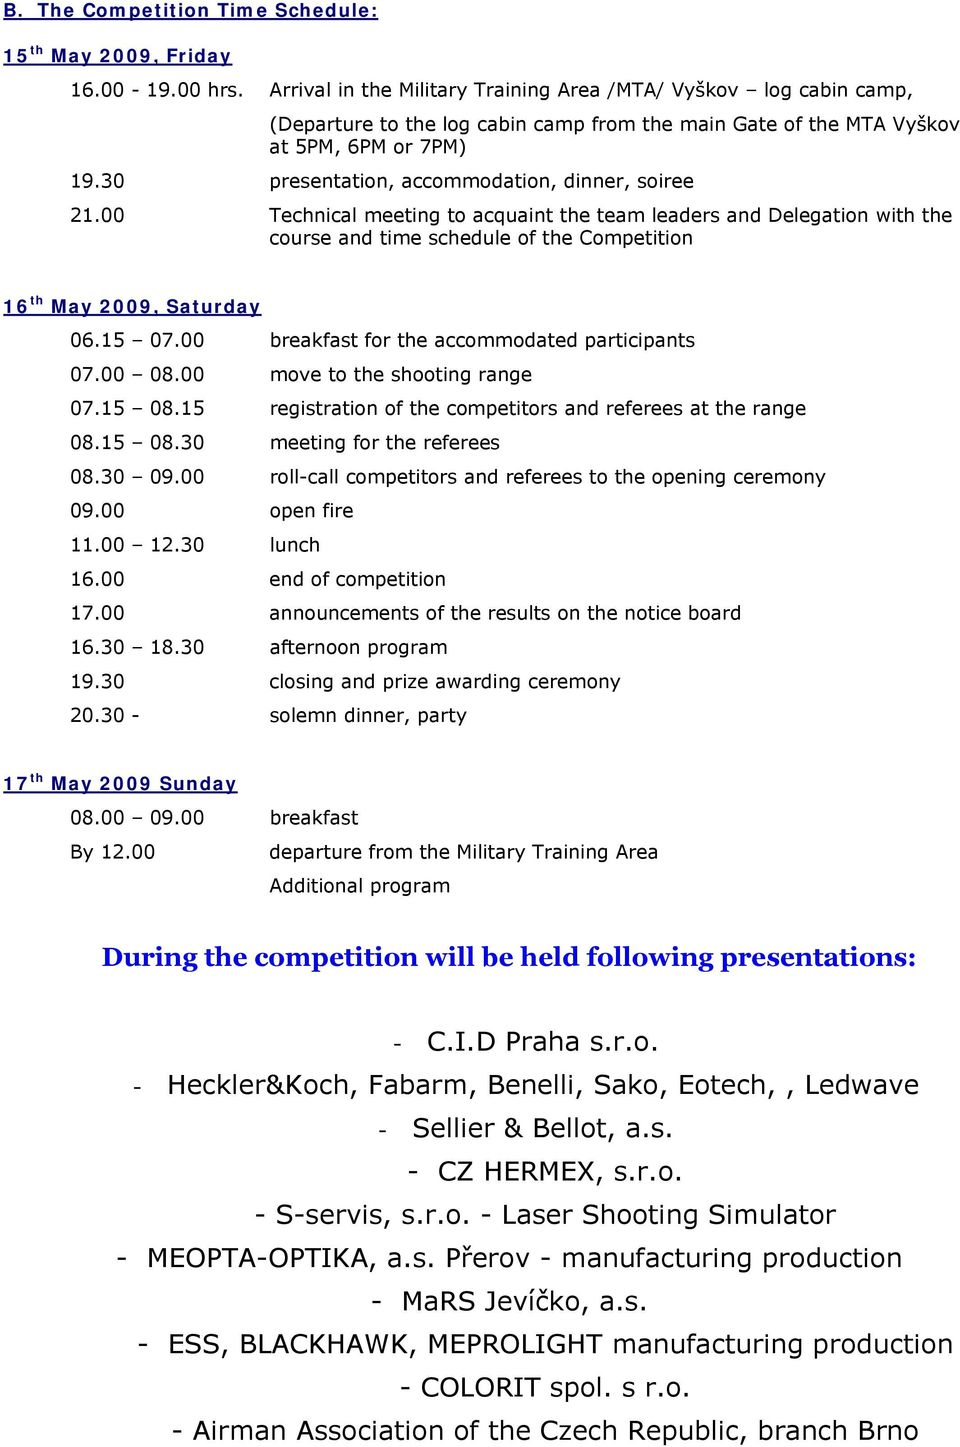 30 presentation, accommodation, dinner, soiree 21.00 Technical meeting to acquaint the team leaders and Delegation with the course and time schedule of the Competition 16 th May 2009, Saturday 06.